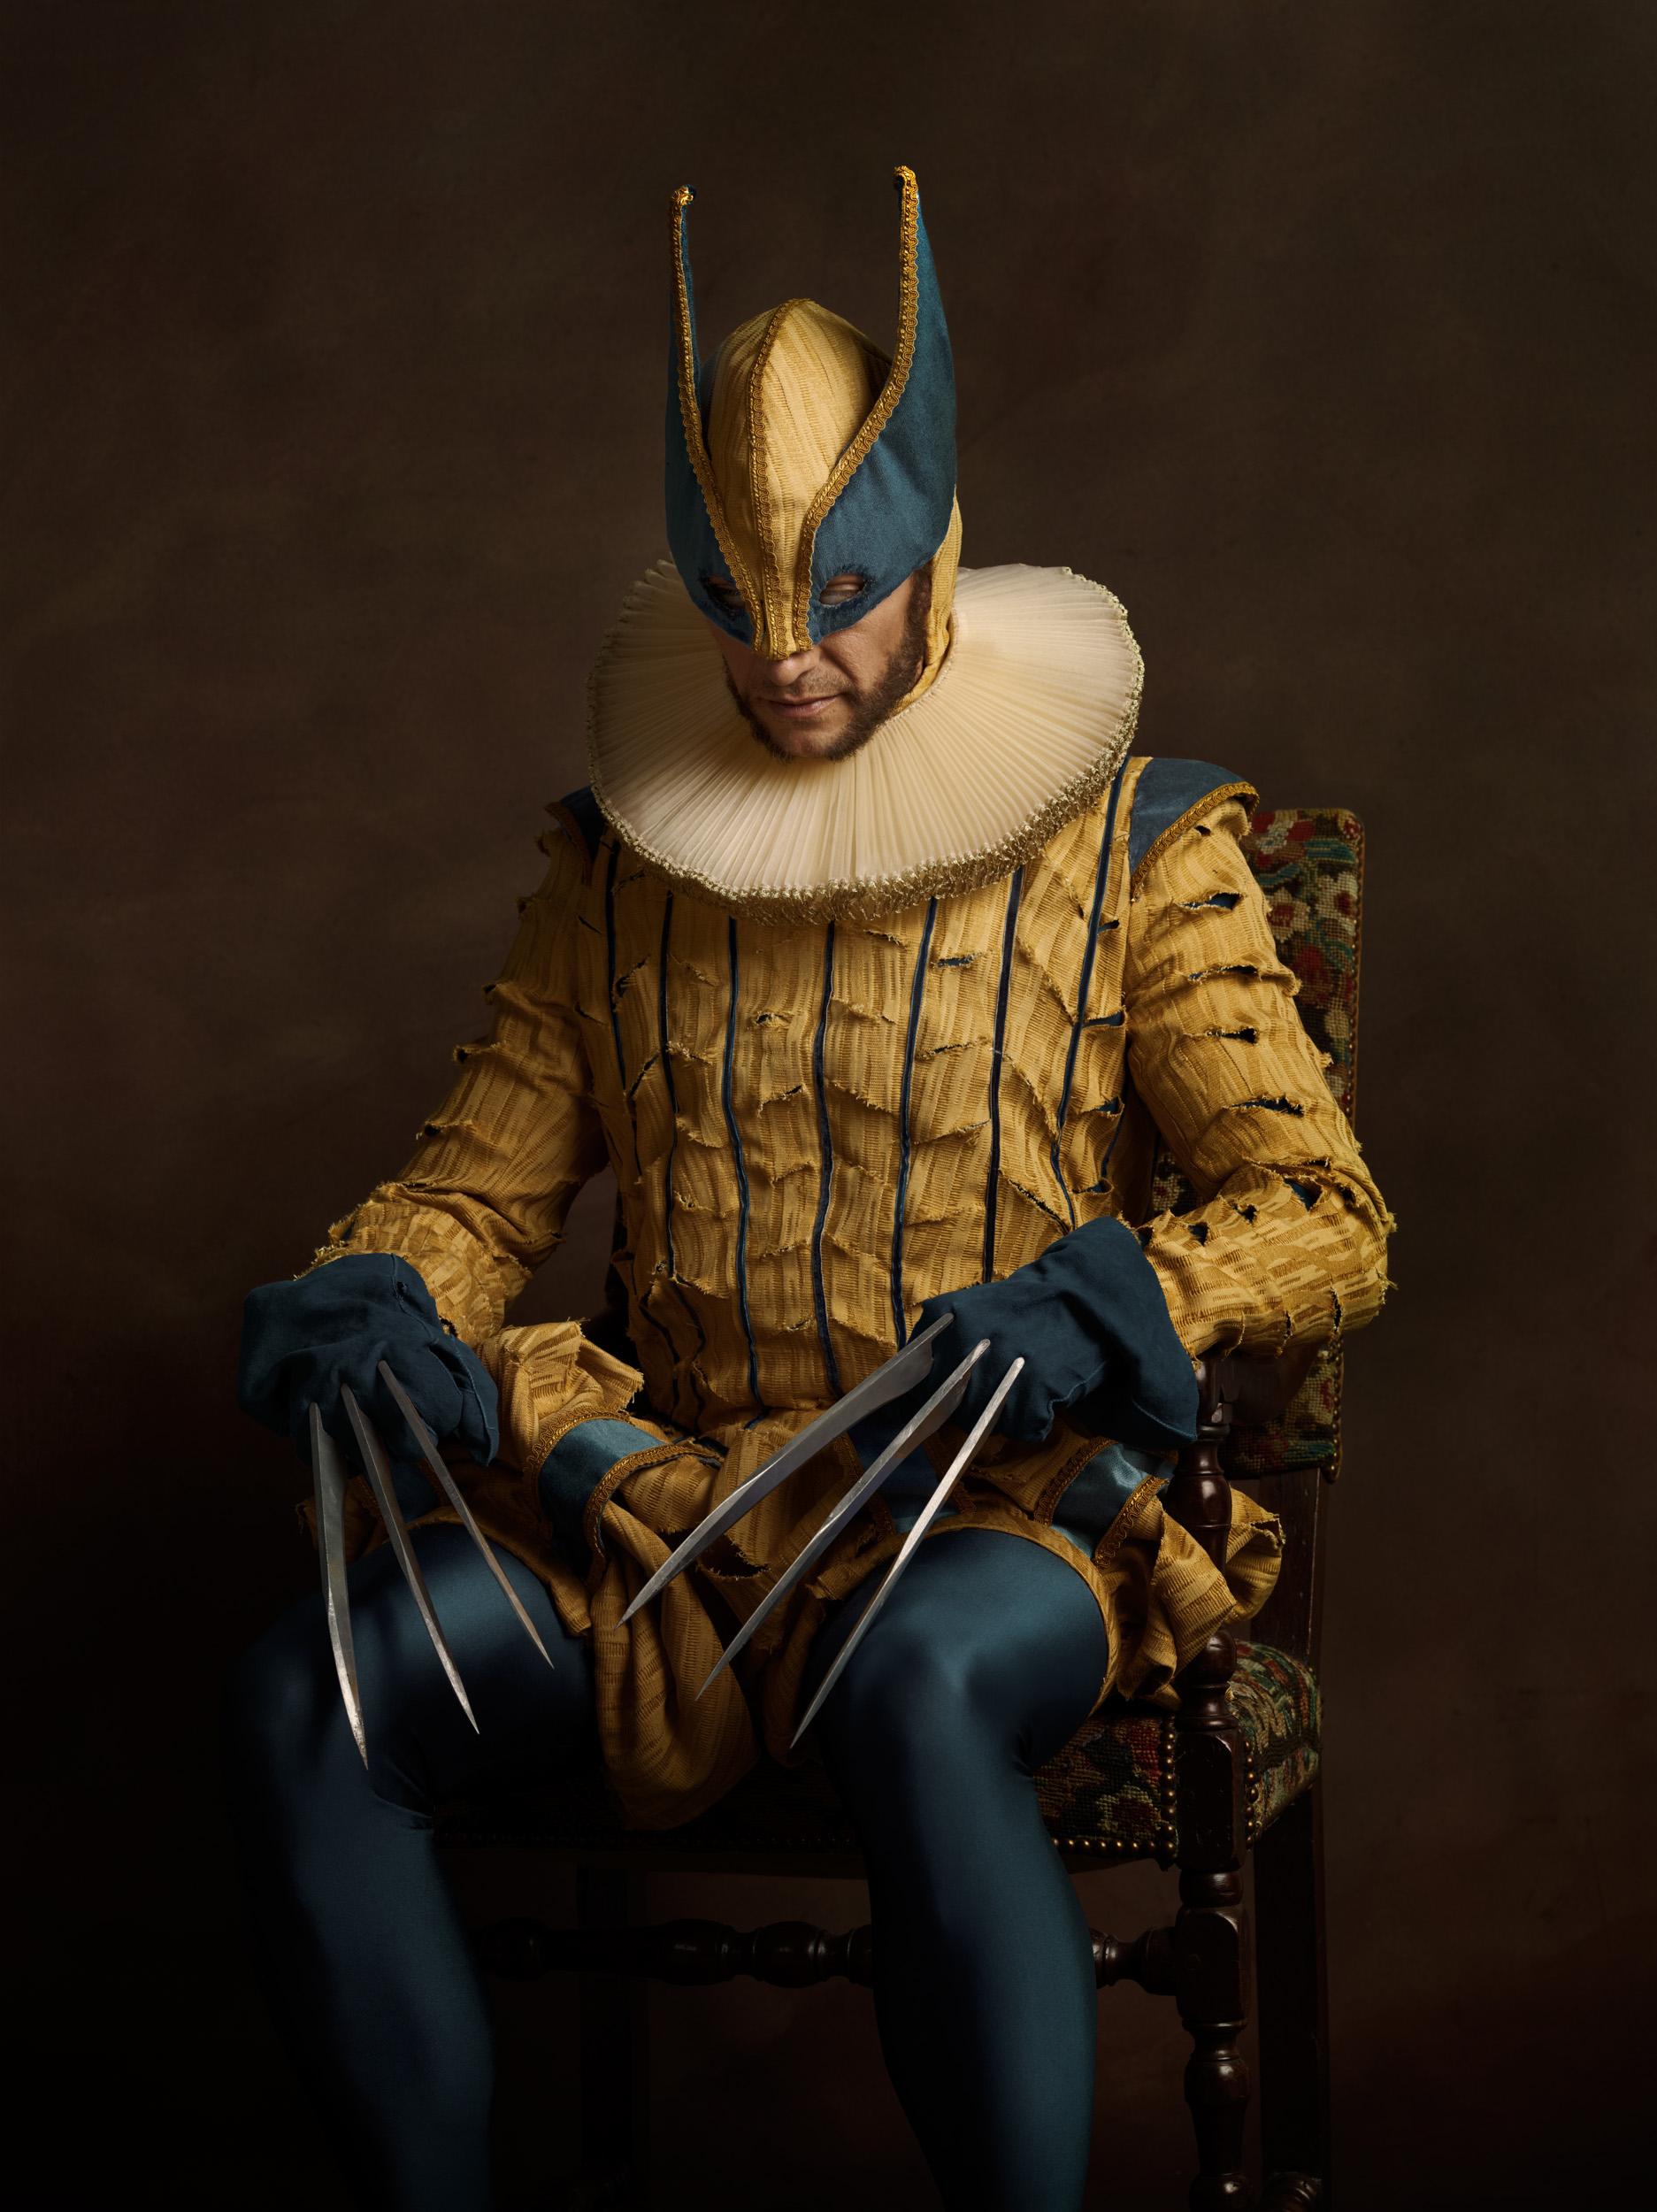 Wolverine by Sacha Goldberger